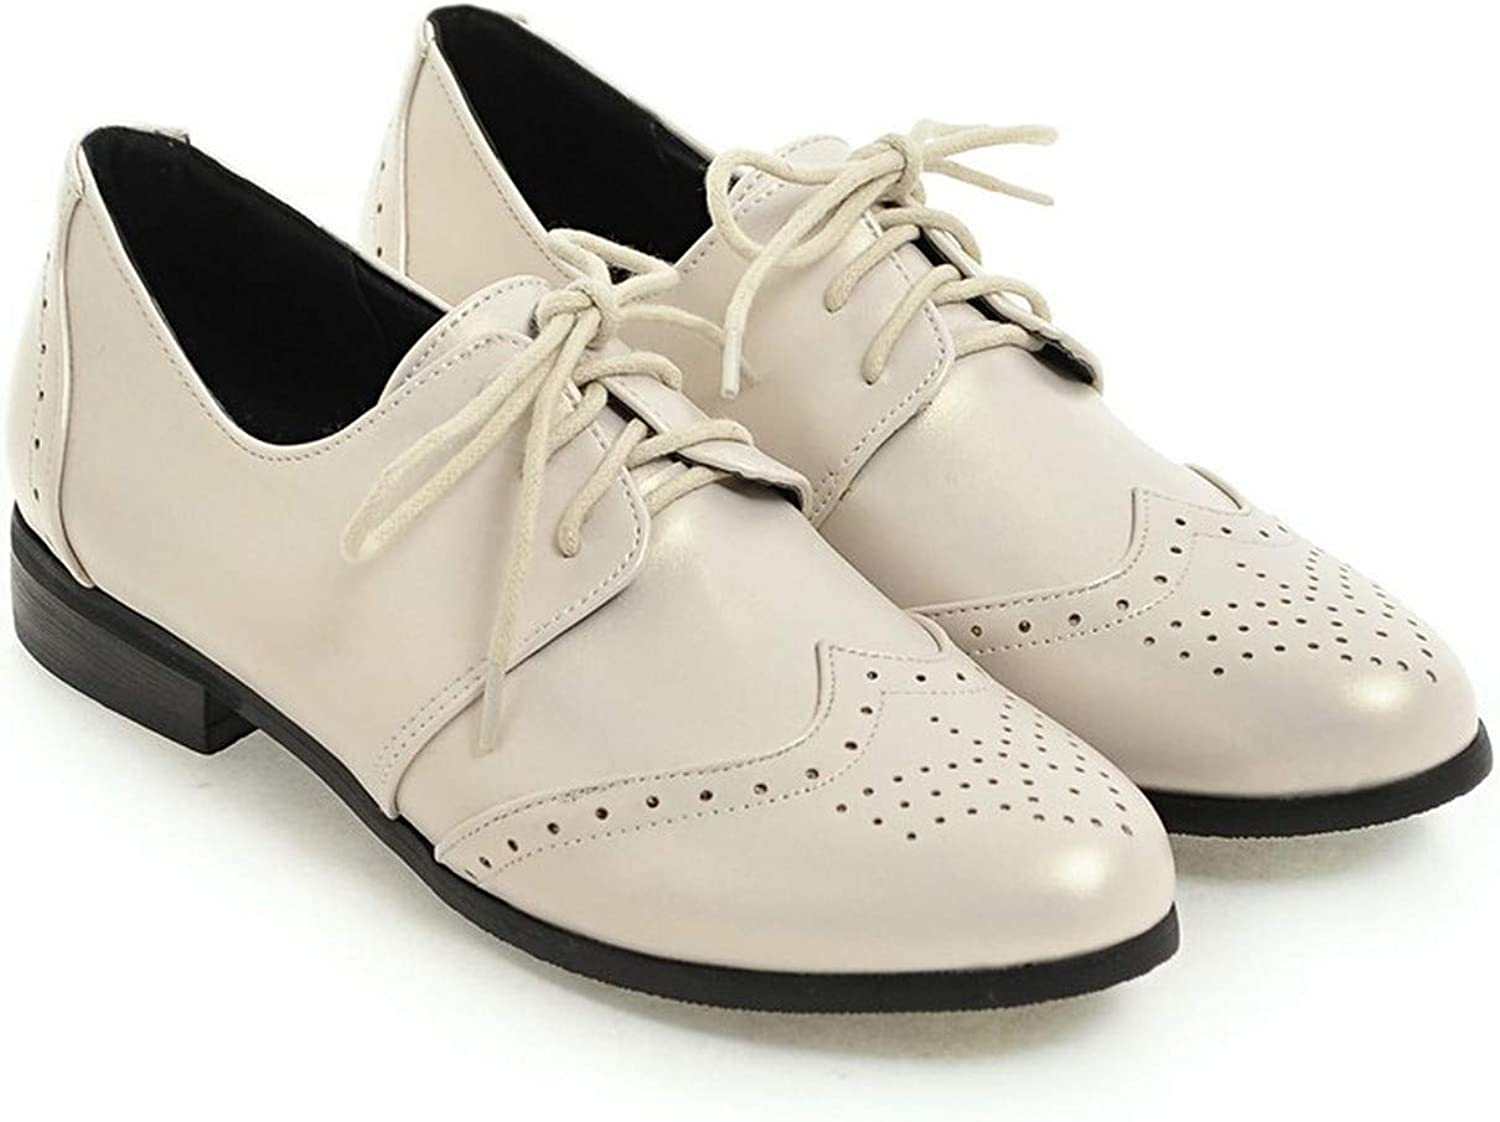 colorful-space Women Oxfords Flats shoes Lace Up Pointed Toe Brand Fashion Causal Brogue shoes Women Beige Black Large Size 11 12 45 46,White,5